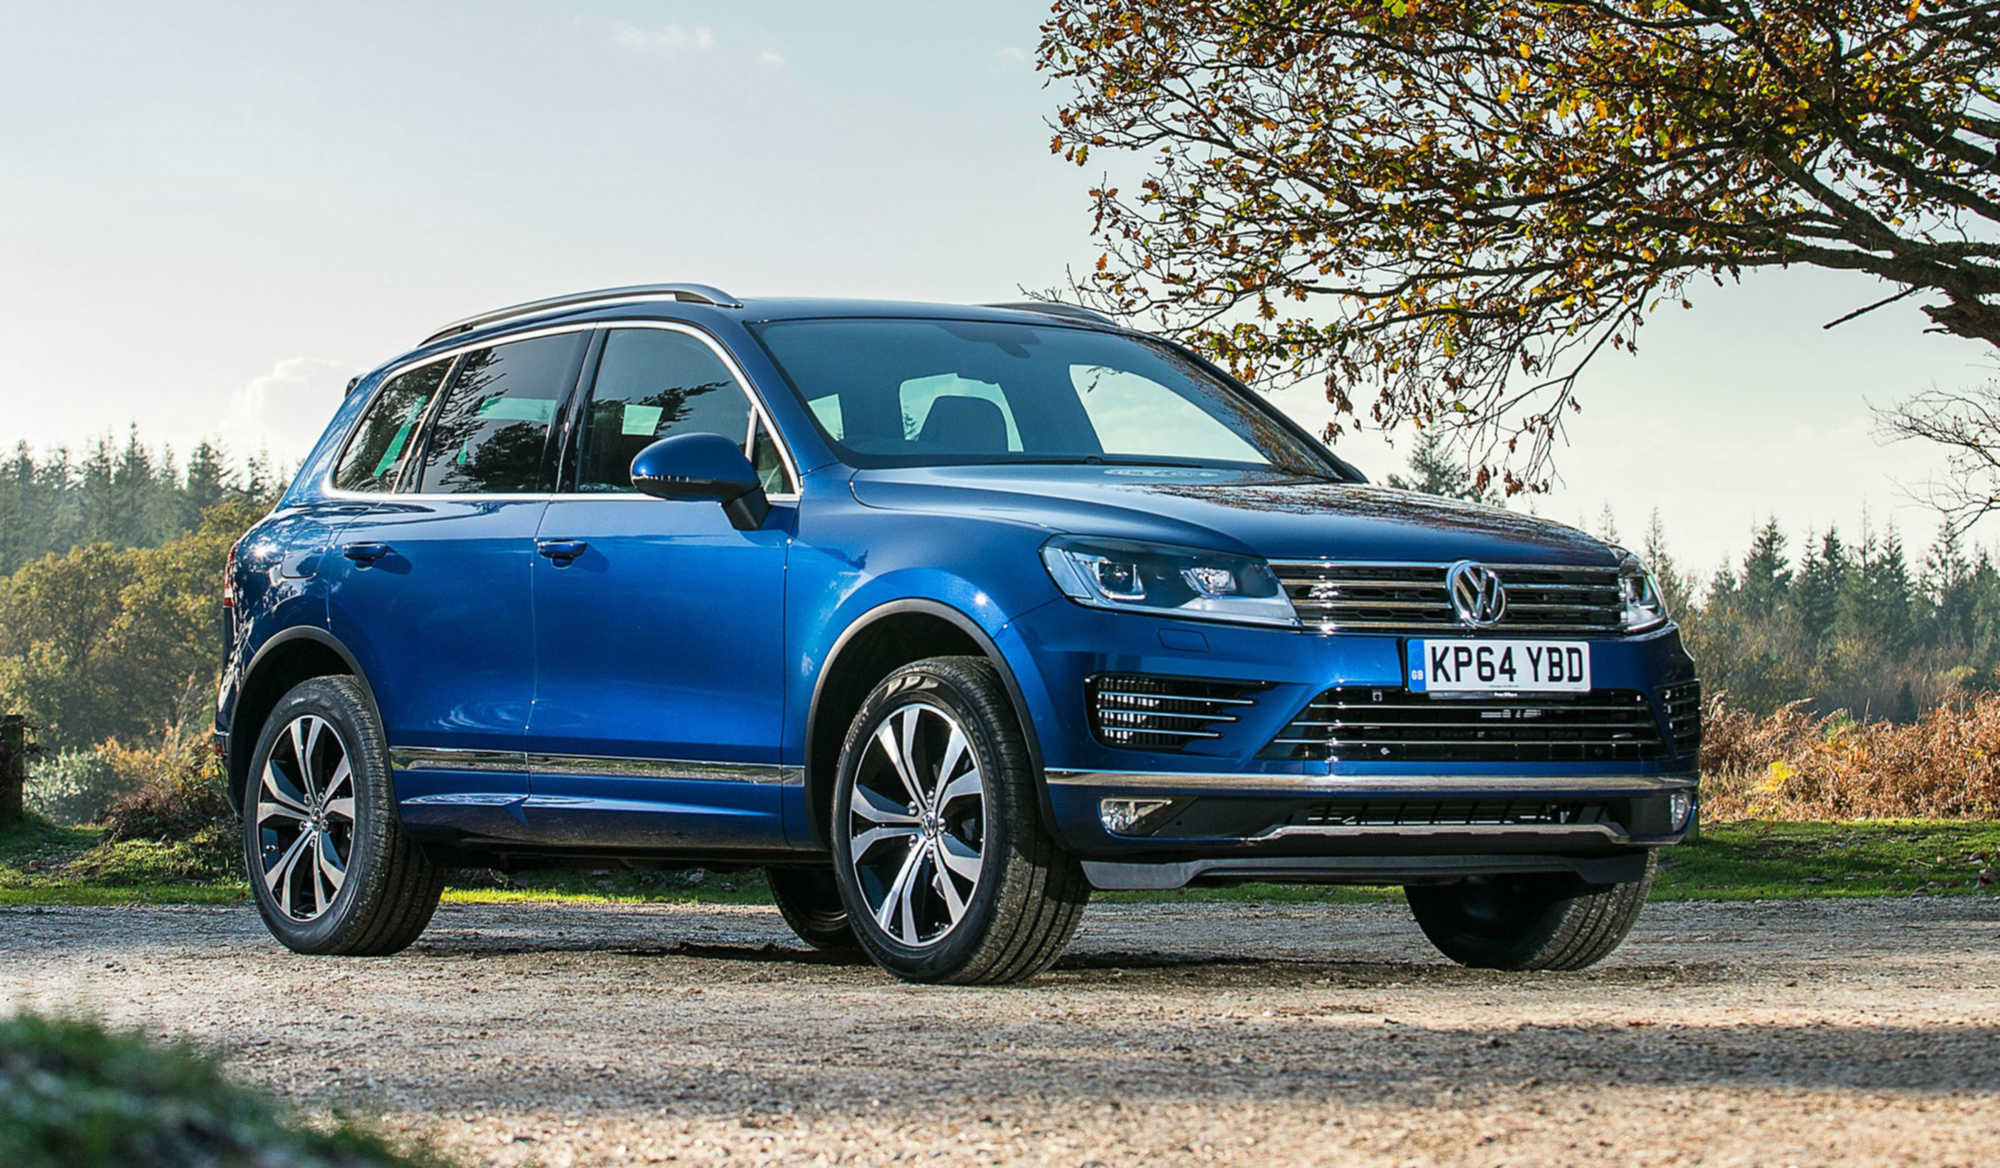 volkswagen touareg 4x4 review car keys. Black Bedroom Furniture Sets. Home Design Ideas